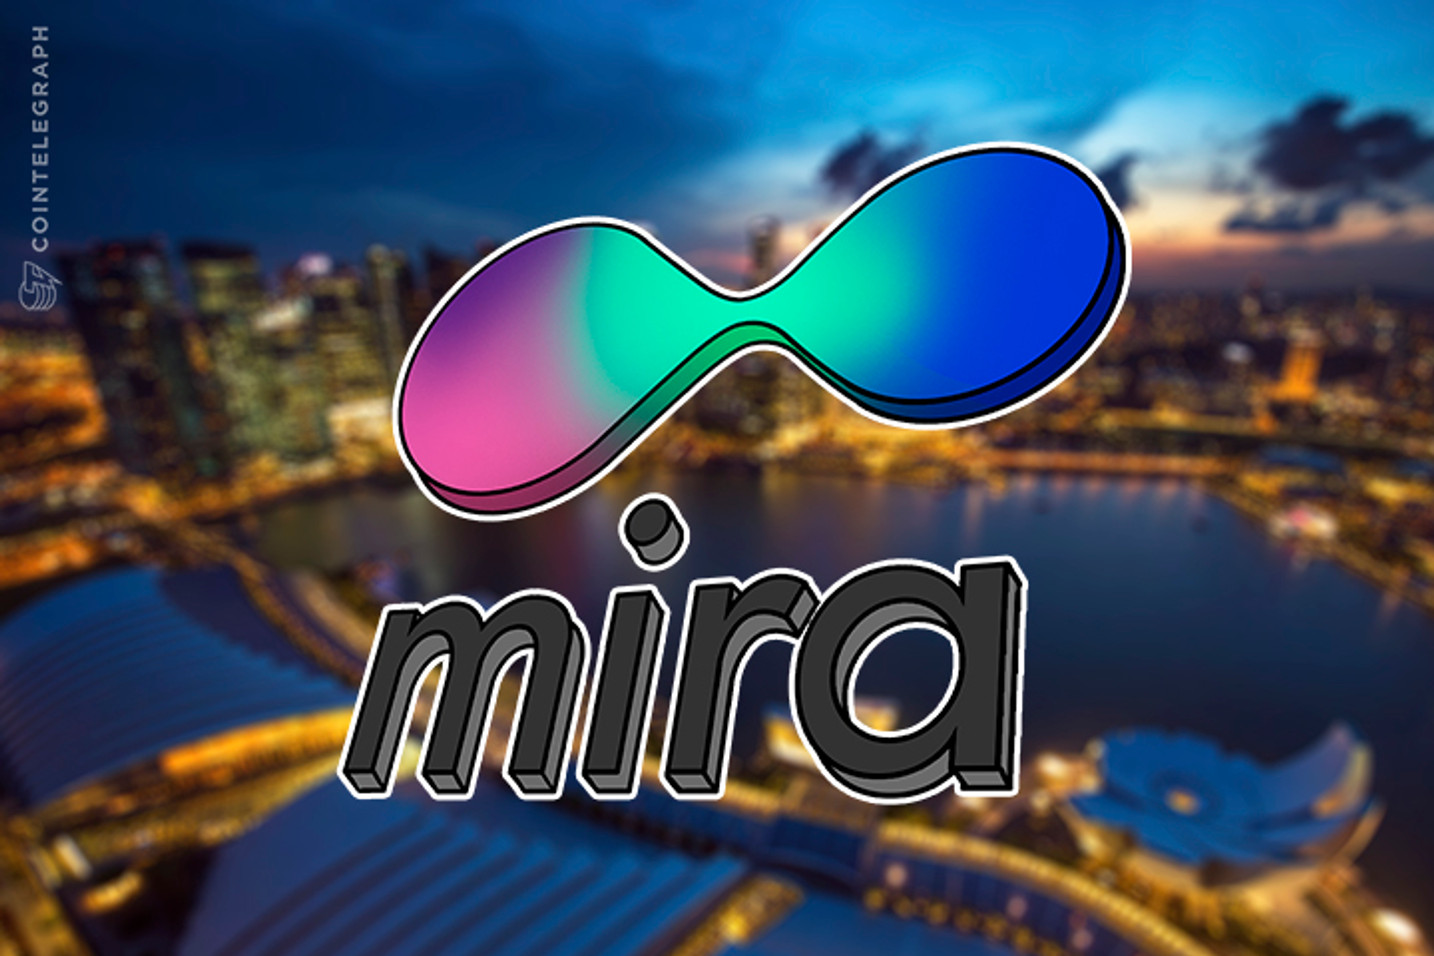 Mira Launches Pre-ICO With Limited Token Emission